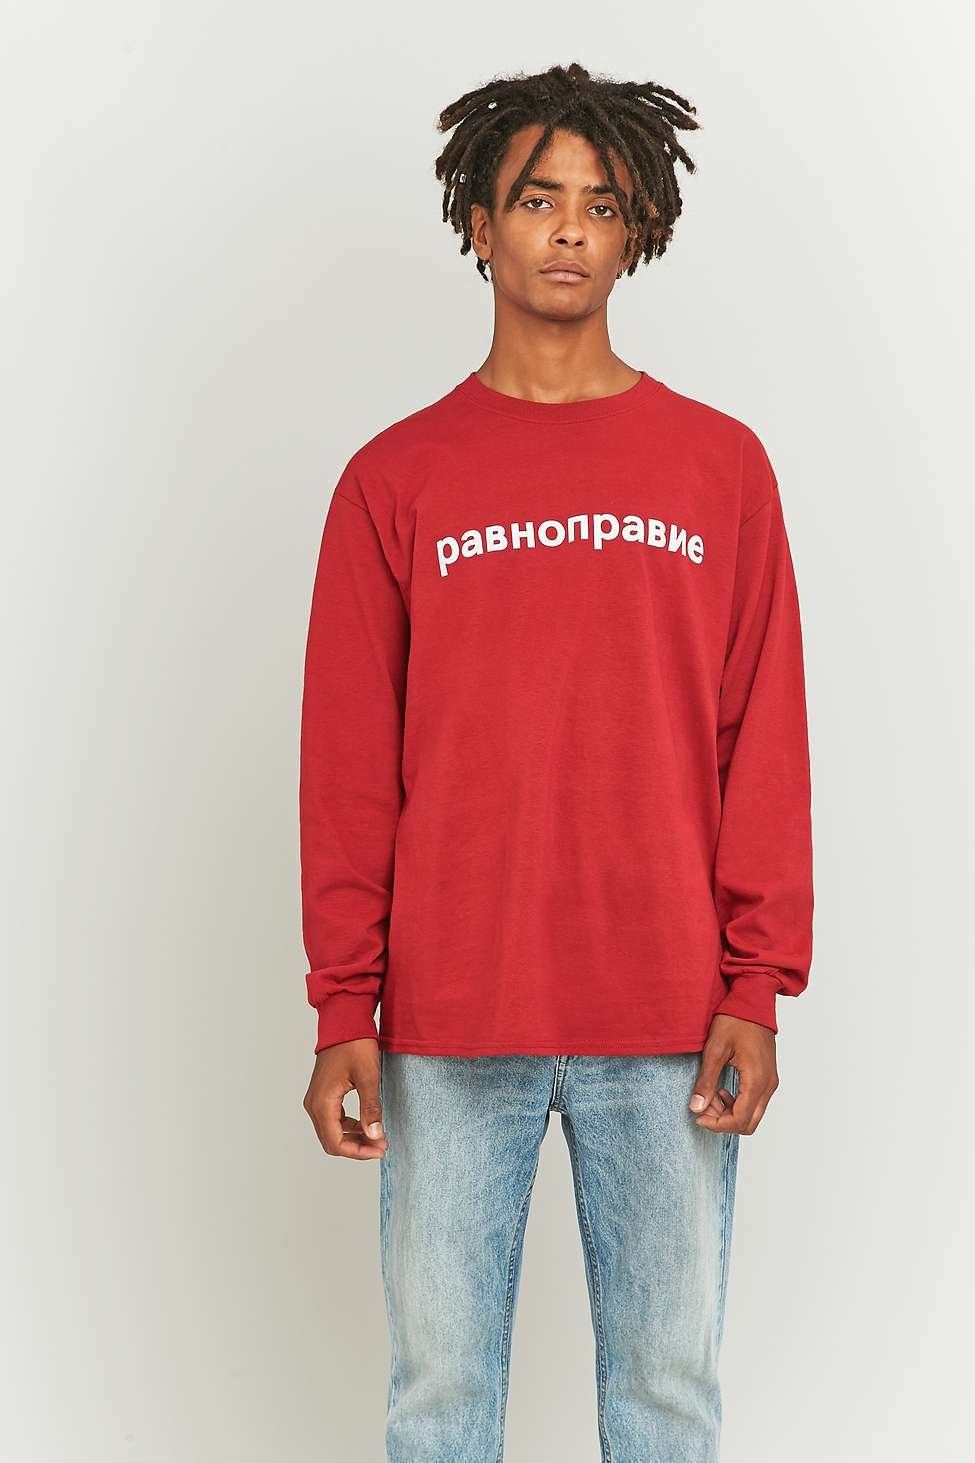 Urban Outfitters UO Equality Russian Text Red Long Sleeve T-shirt